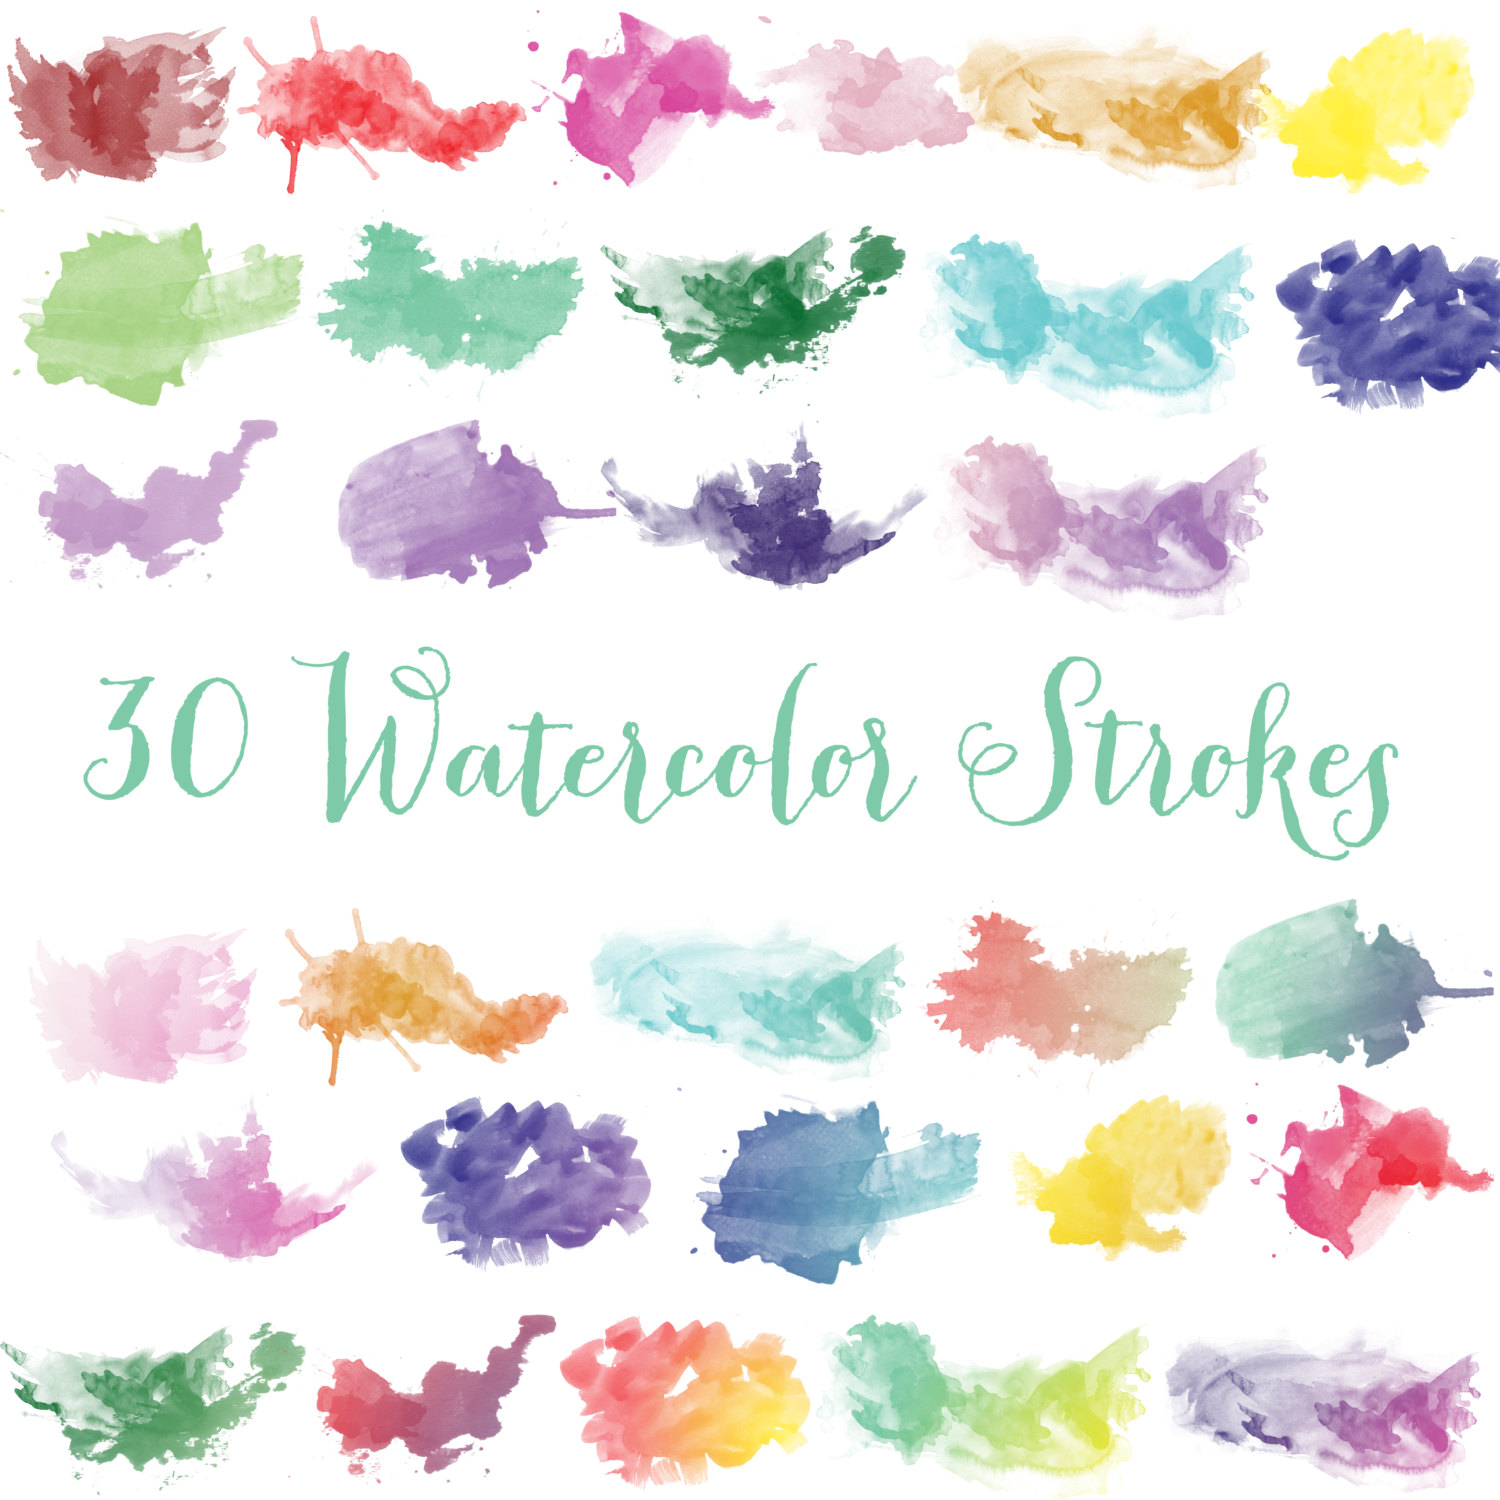 1000+ images about gotta watercolor the world on Pinterest.